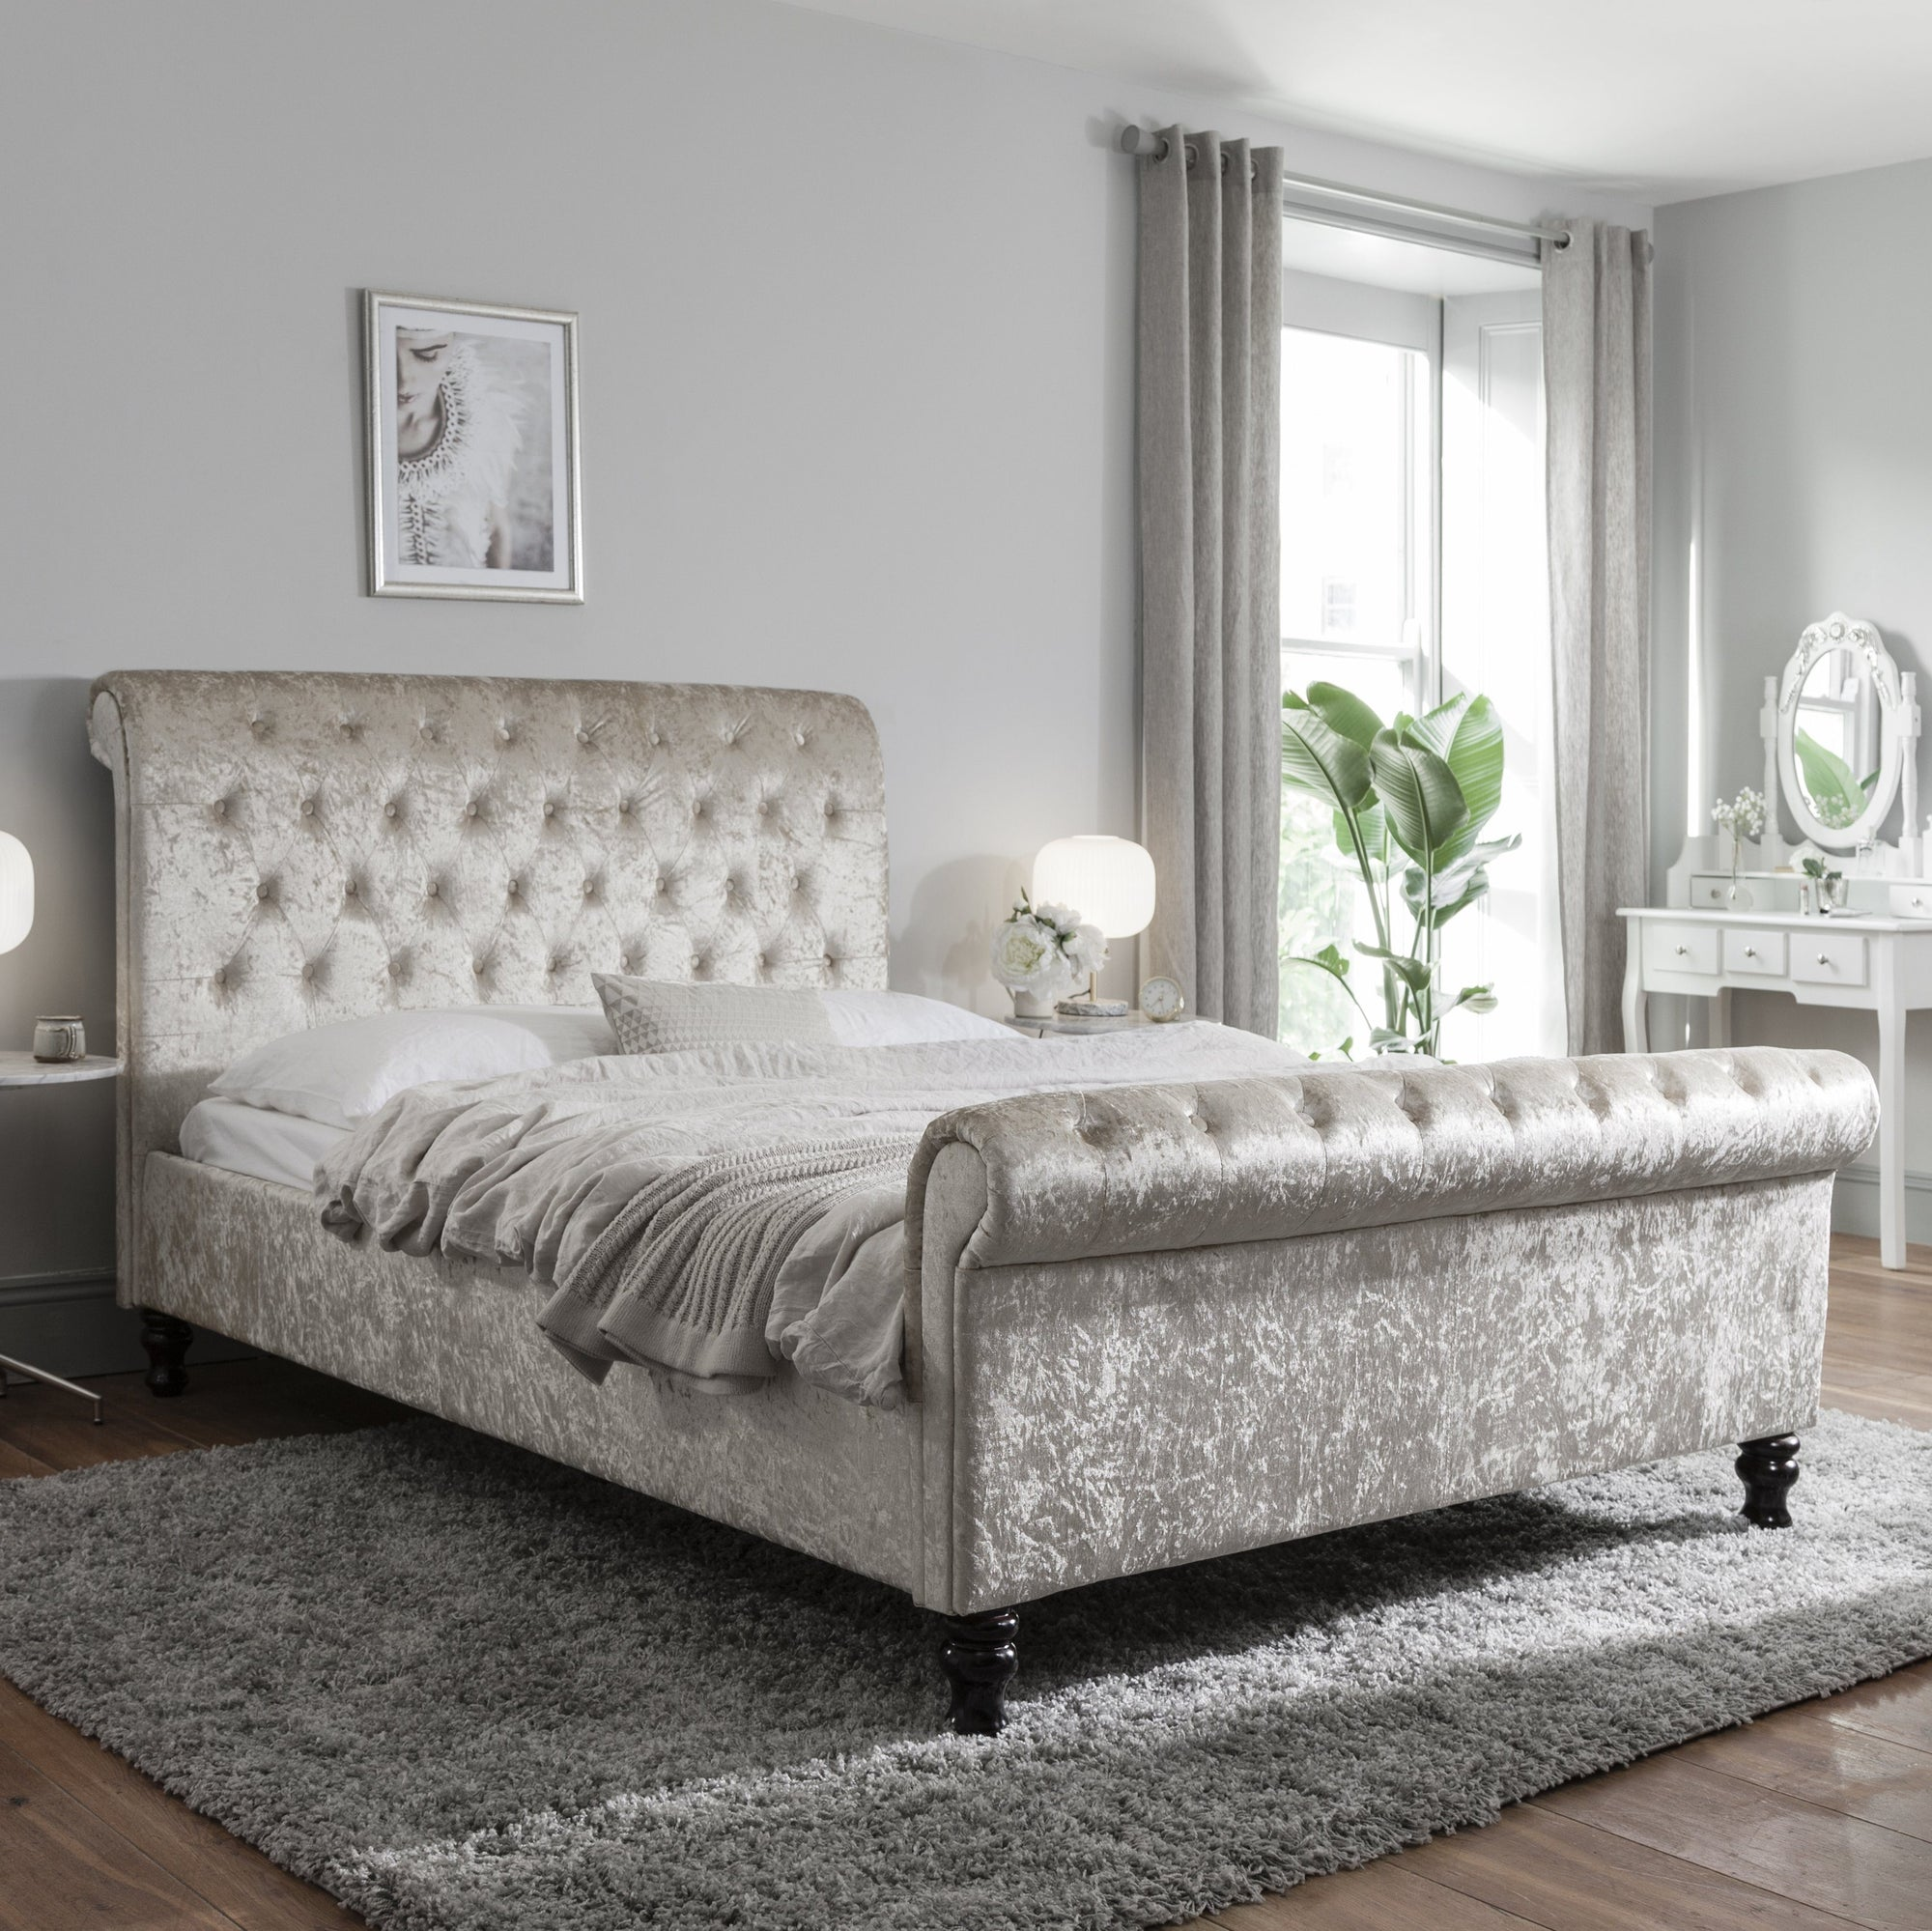 Double Crushed Velvet Sleigh Bed Frame - Champagne - Laura James